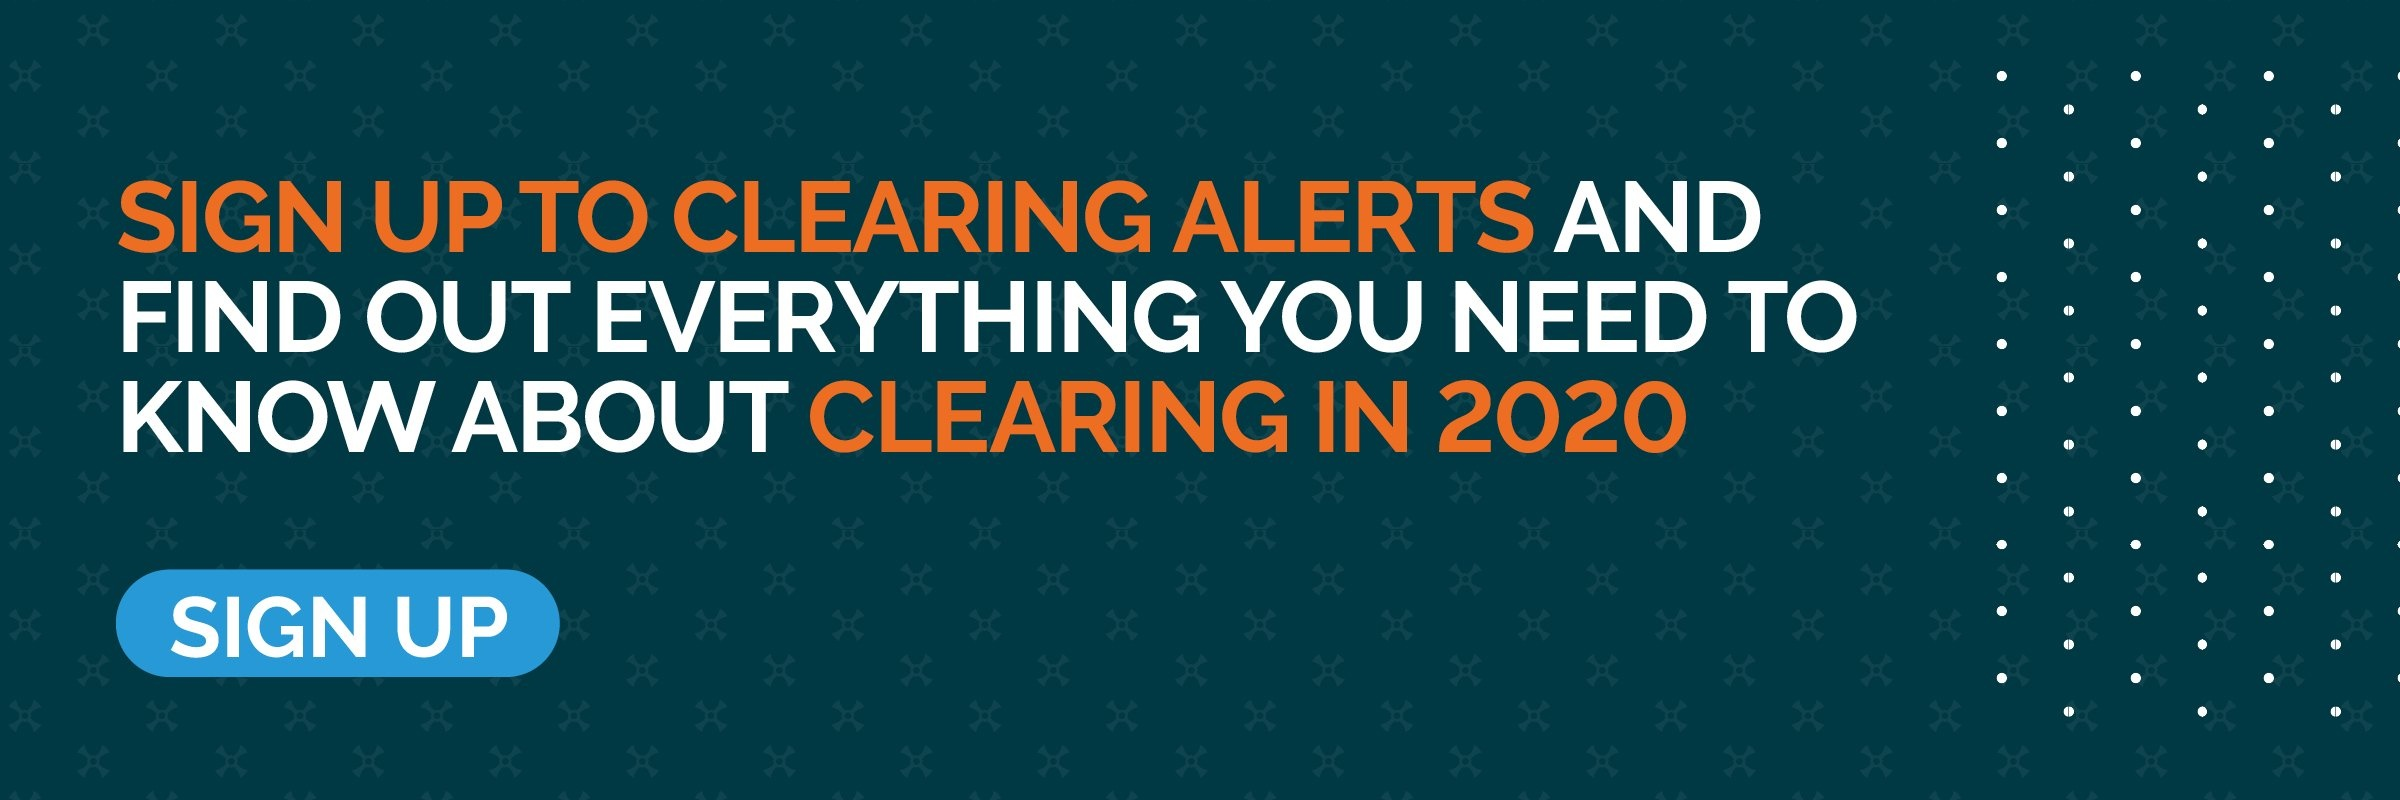 Sign_up_to_Clearing_Alerts